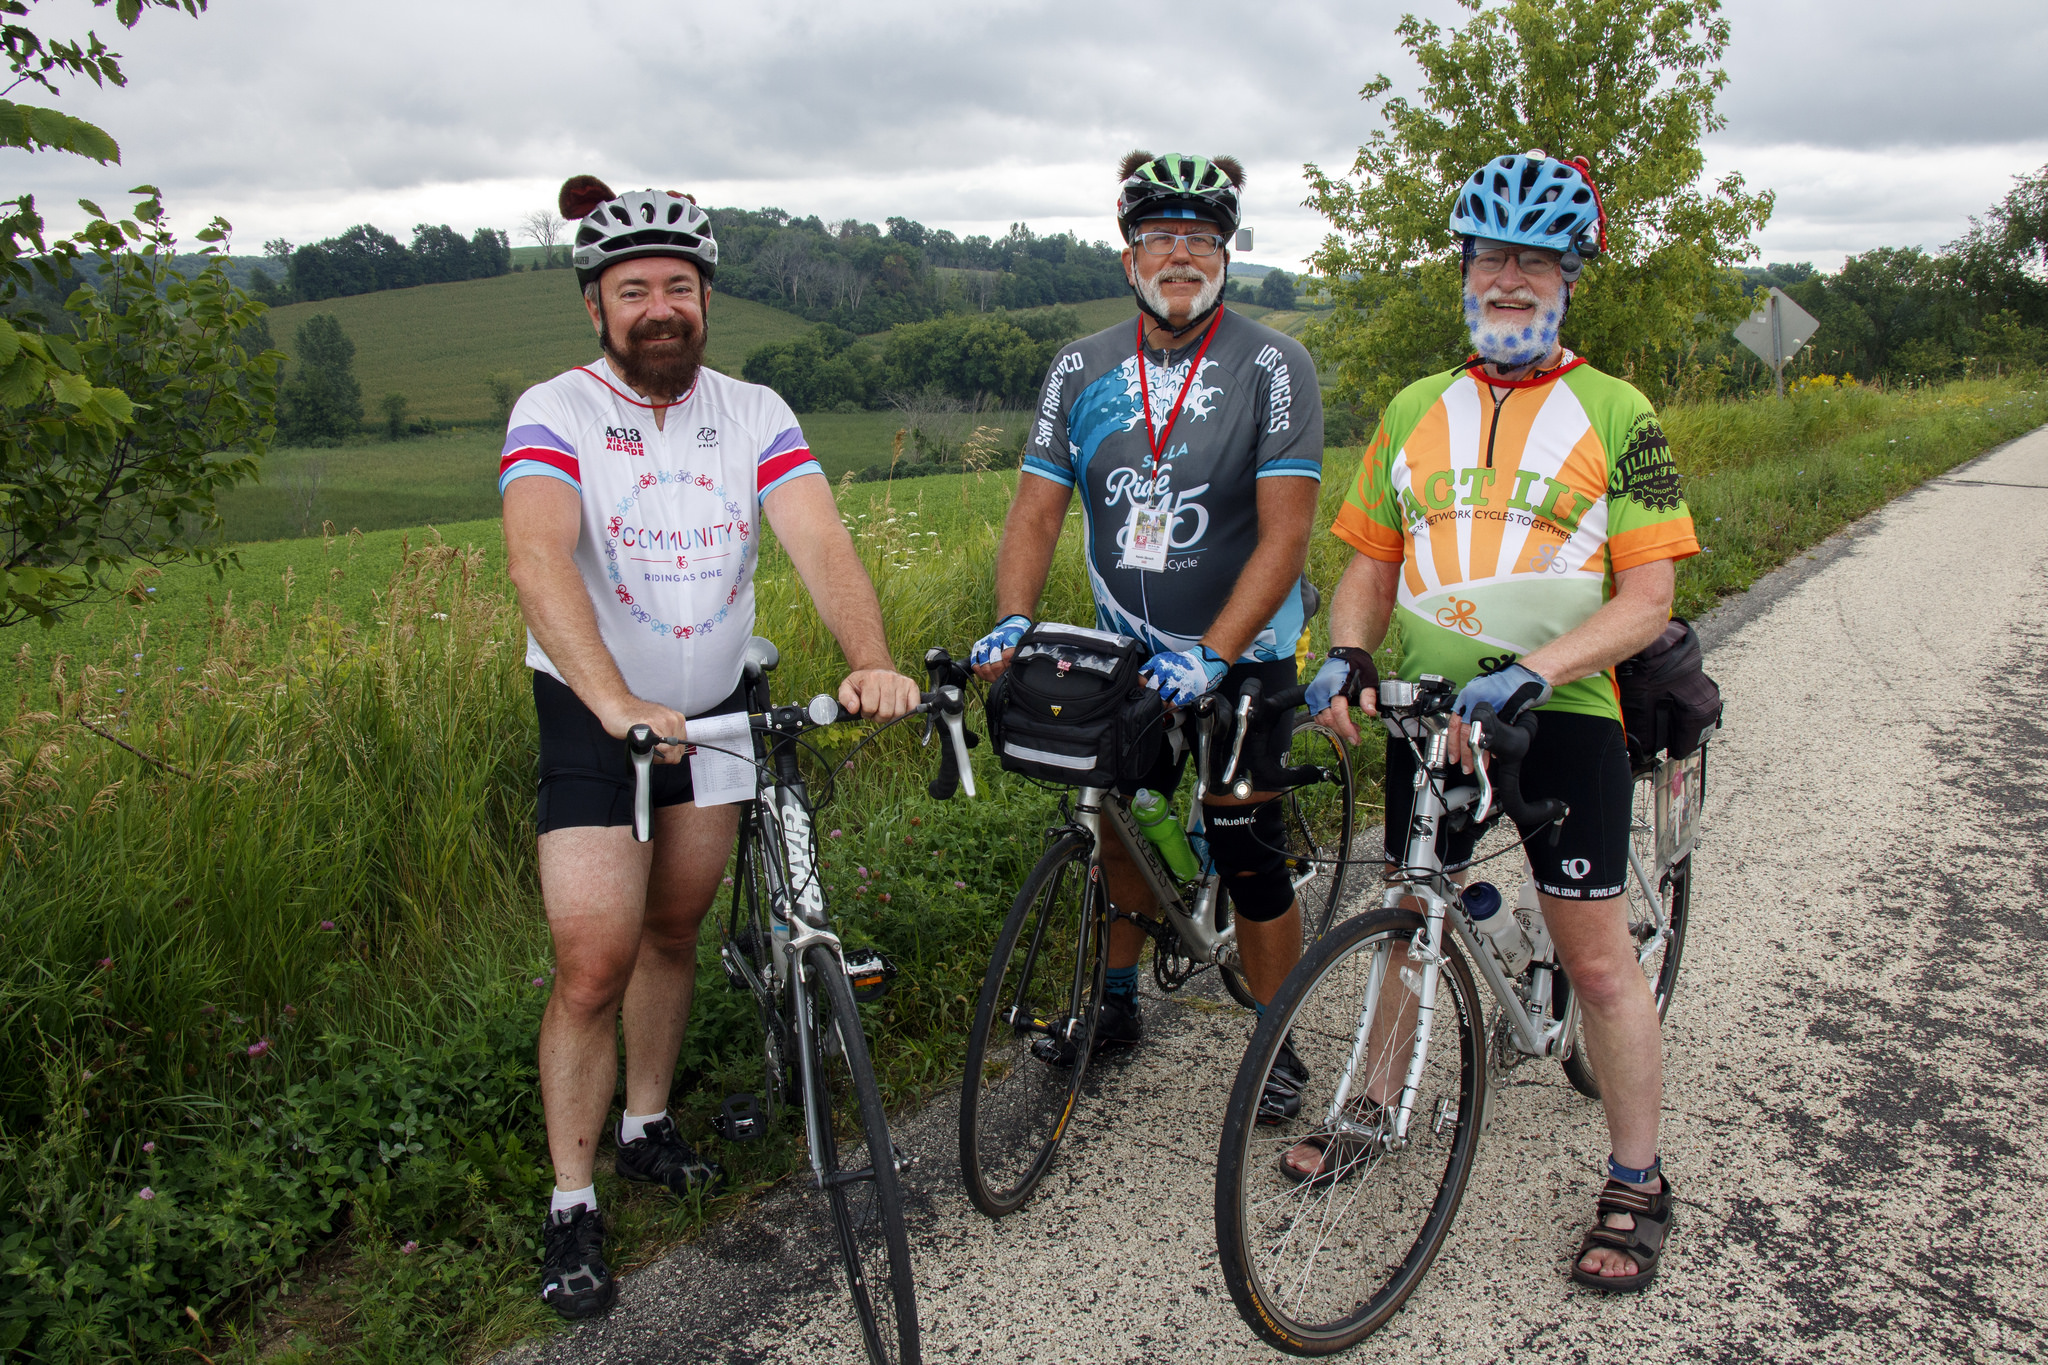 Wis AIDS Ride 2016 Colorful riders Day 2.jpg